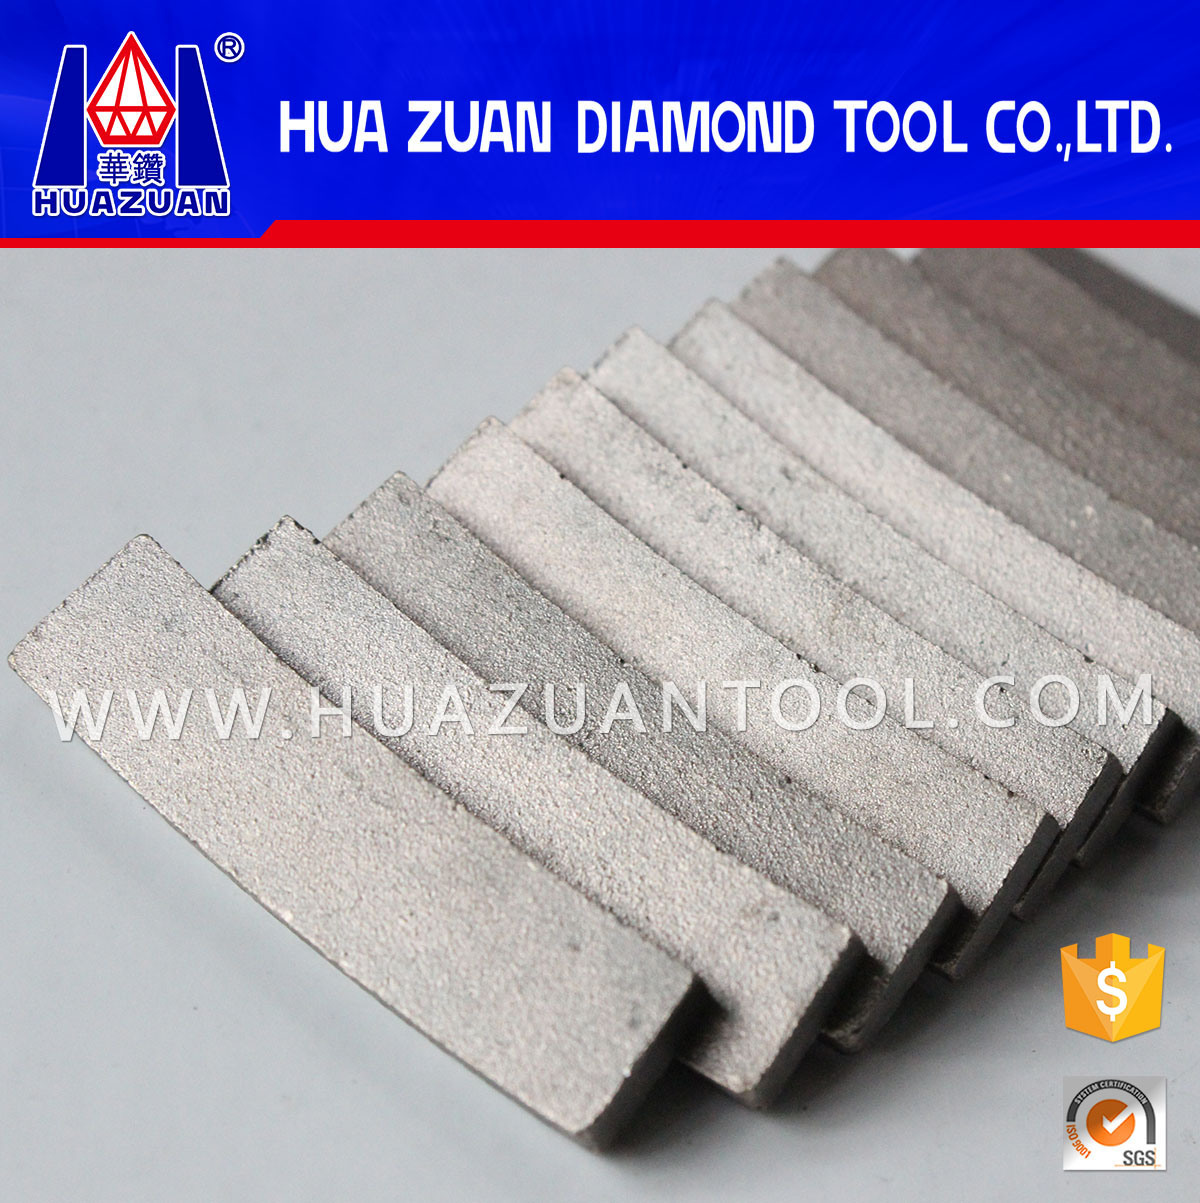 Fan Shape Diamond Segment for Cutting Granite